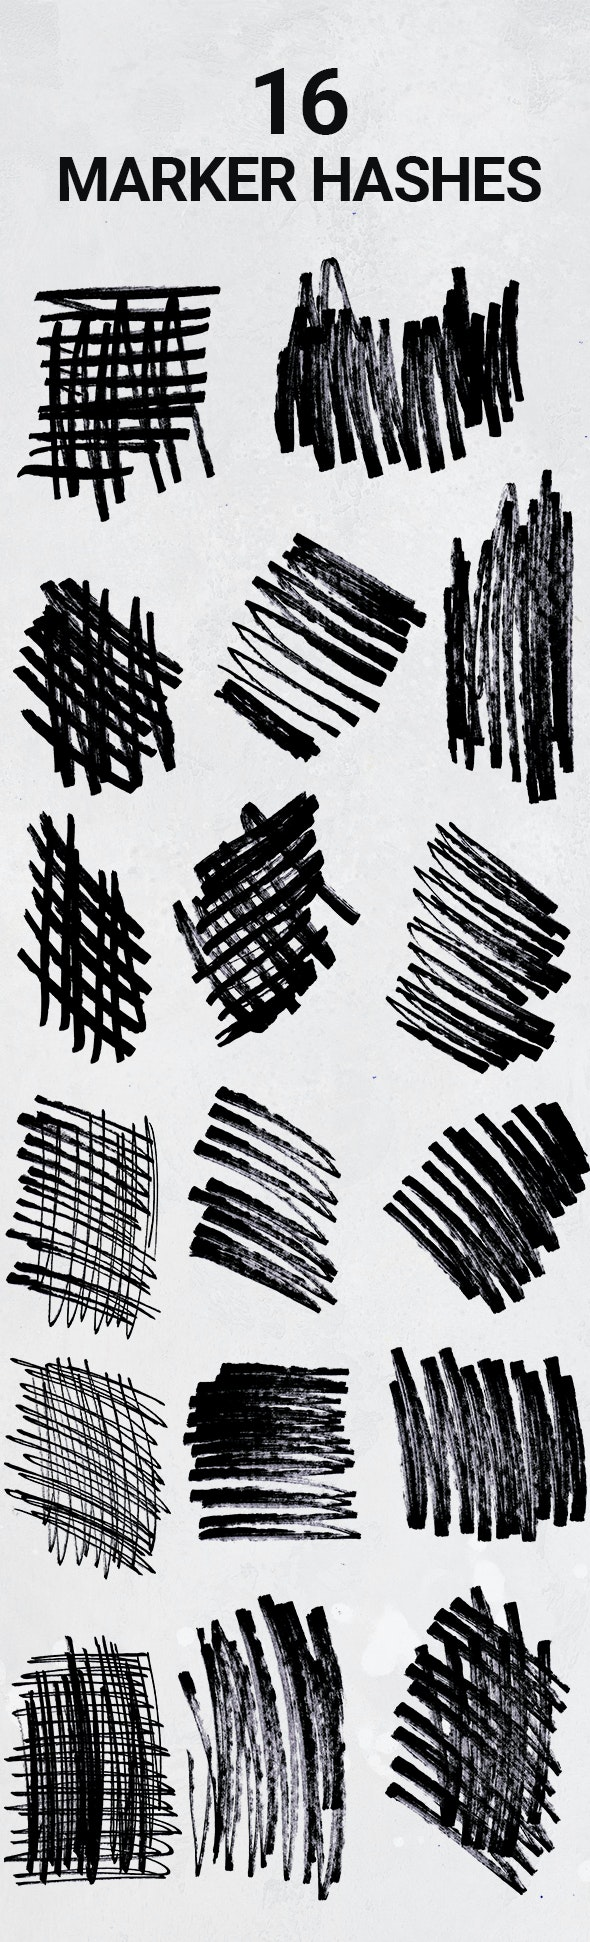 16 Hand Drawn Permanent Marker Hashes - Artistic Brushes